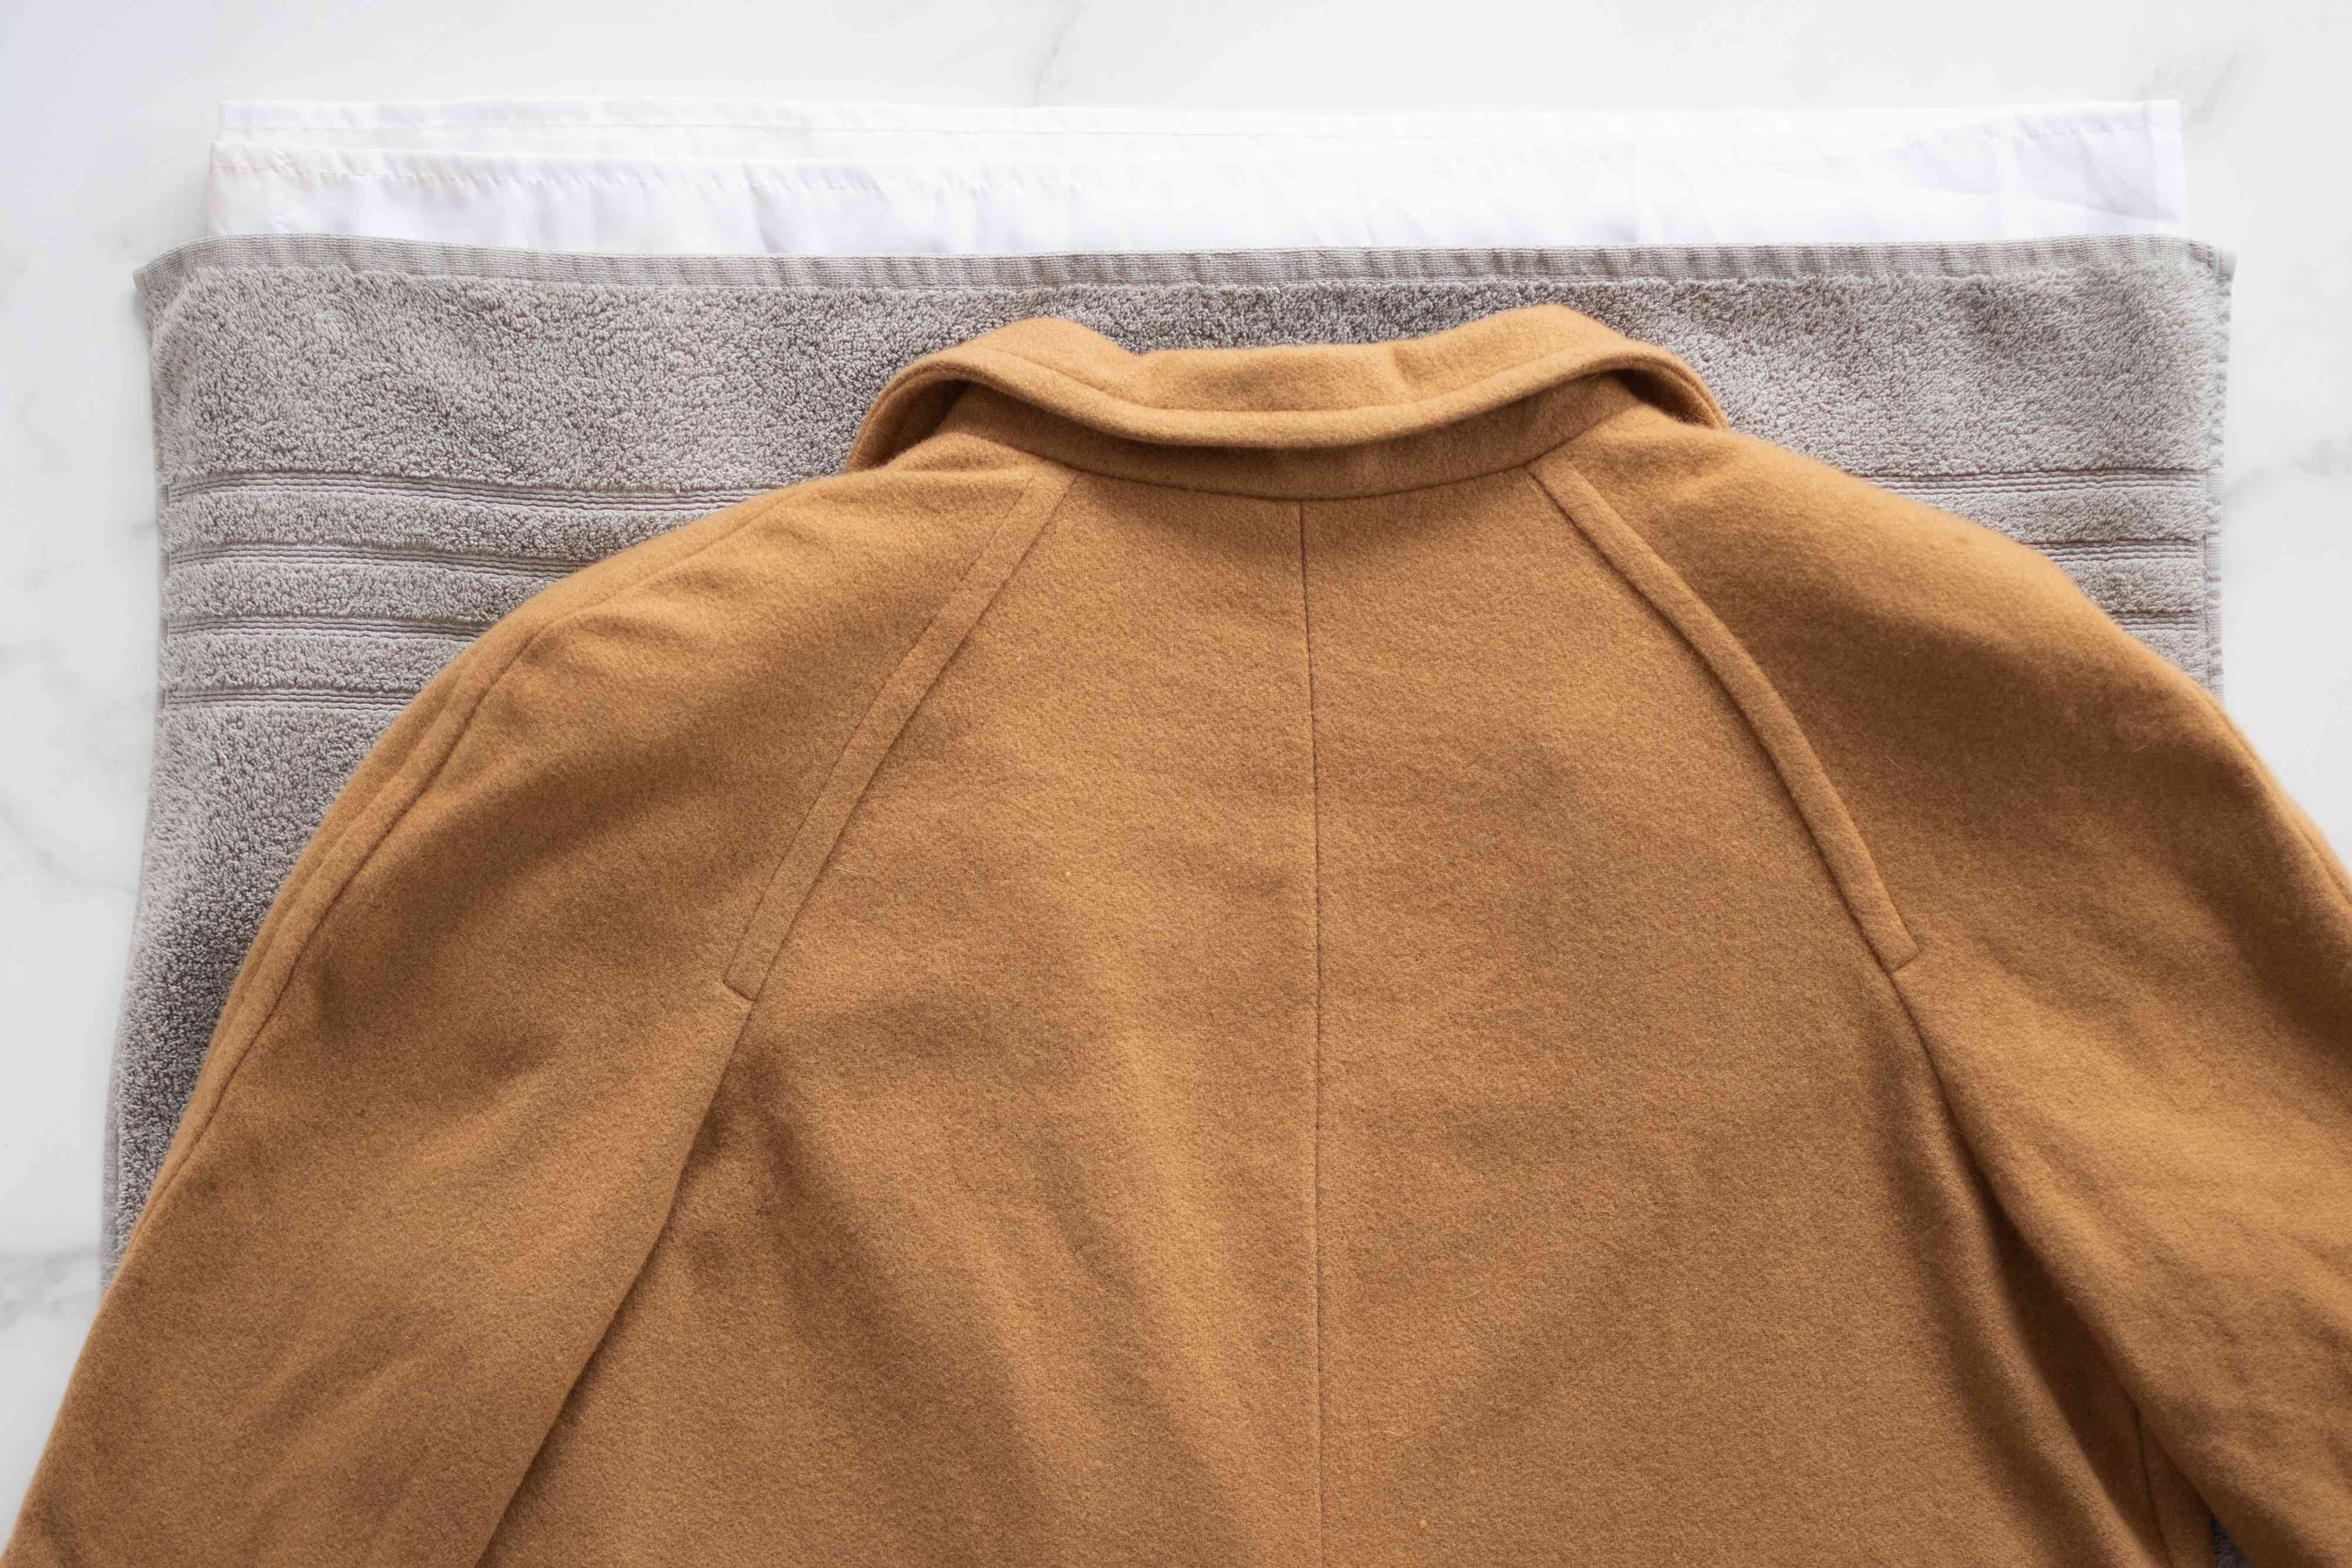 Tan wool coat layed flat on gray towel to air dry